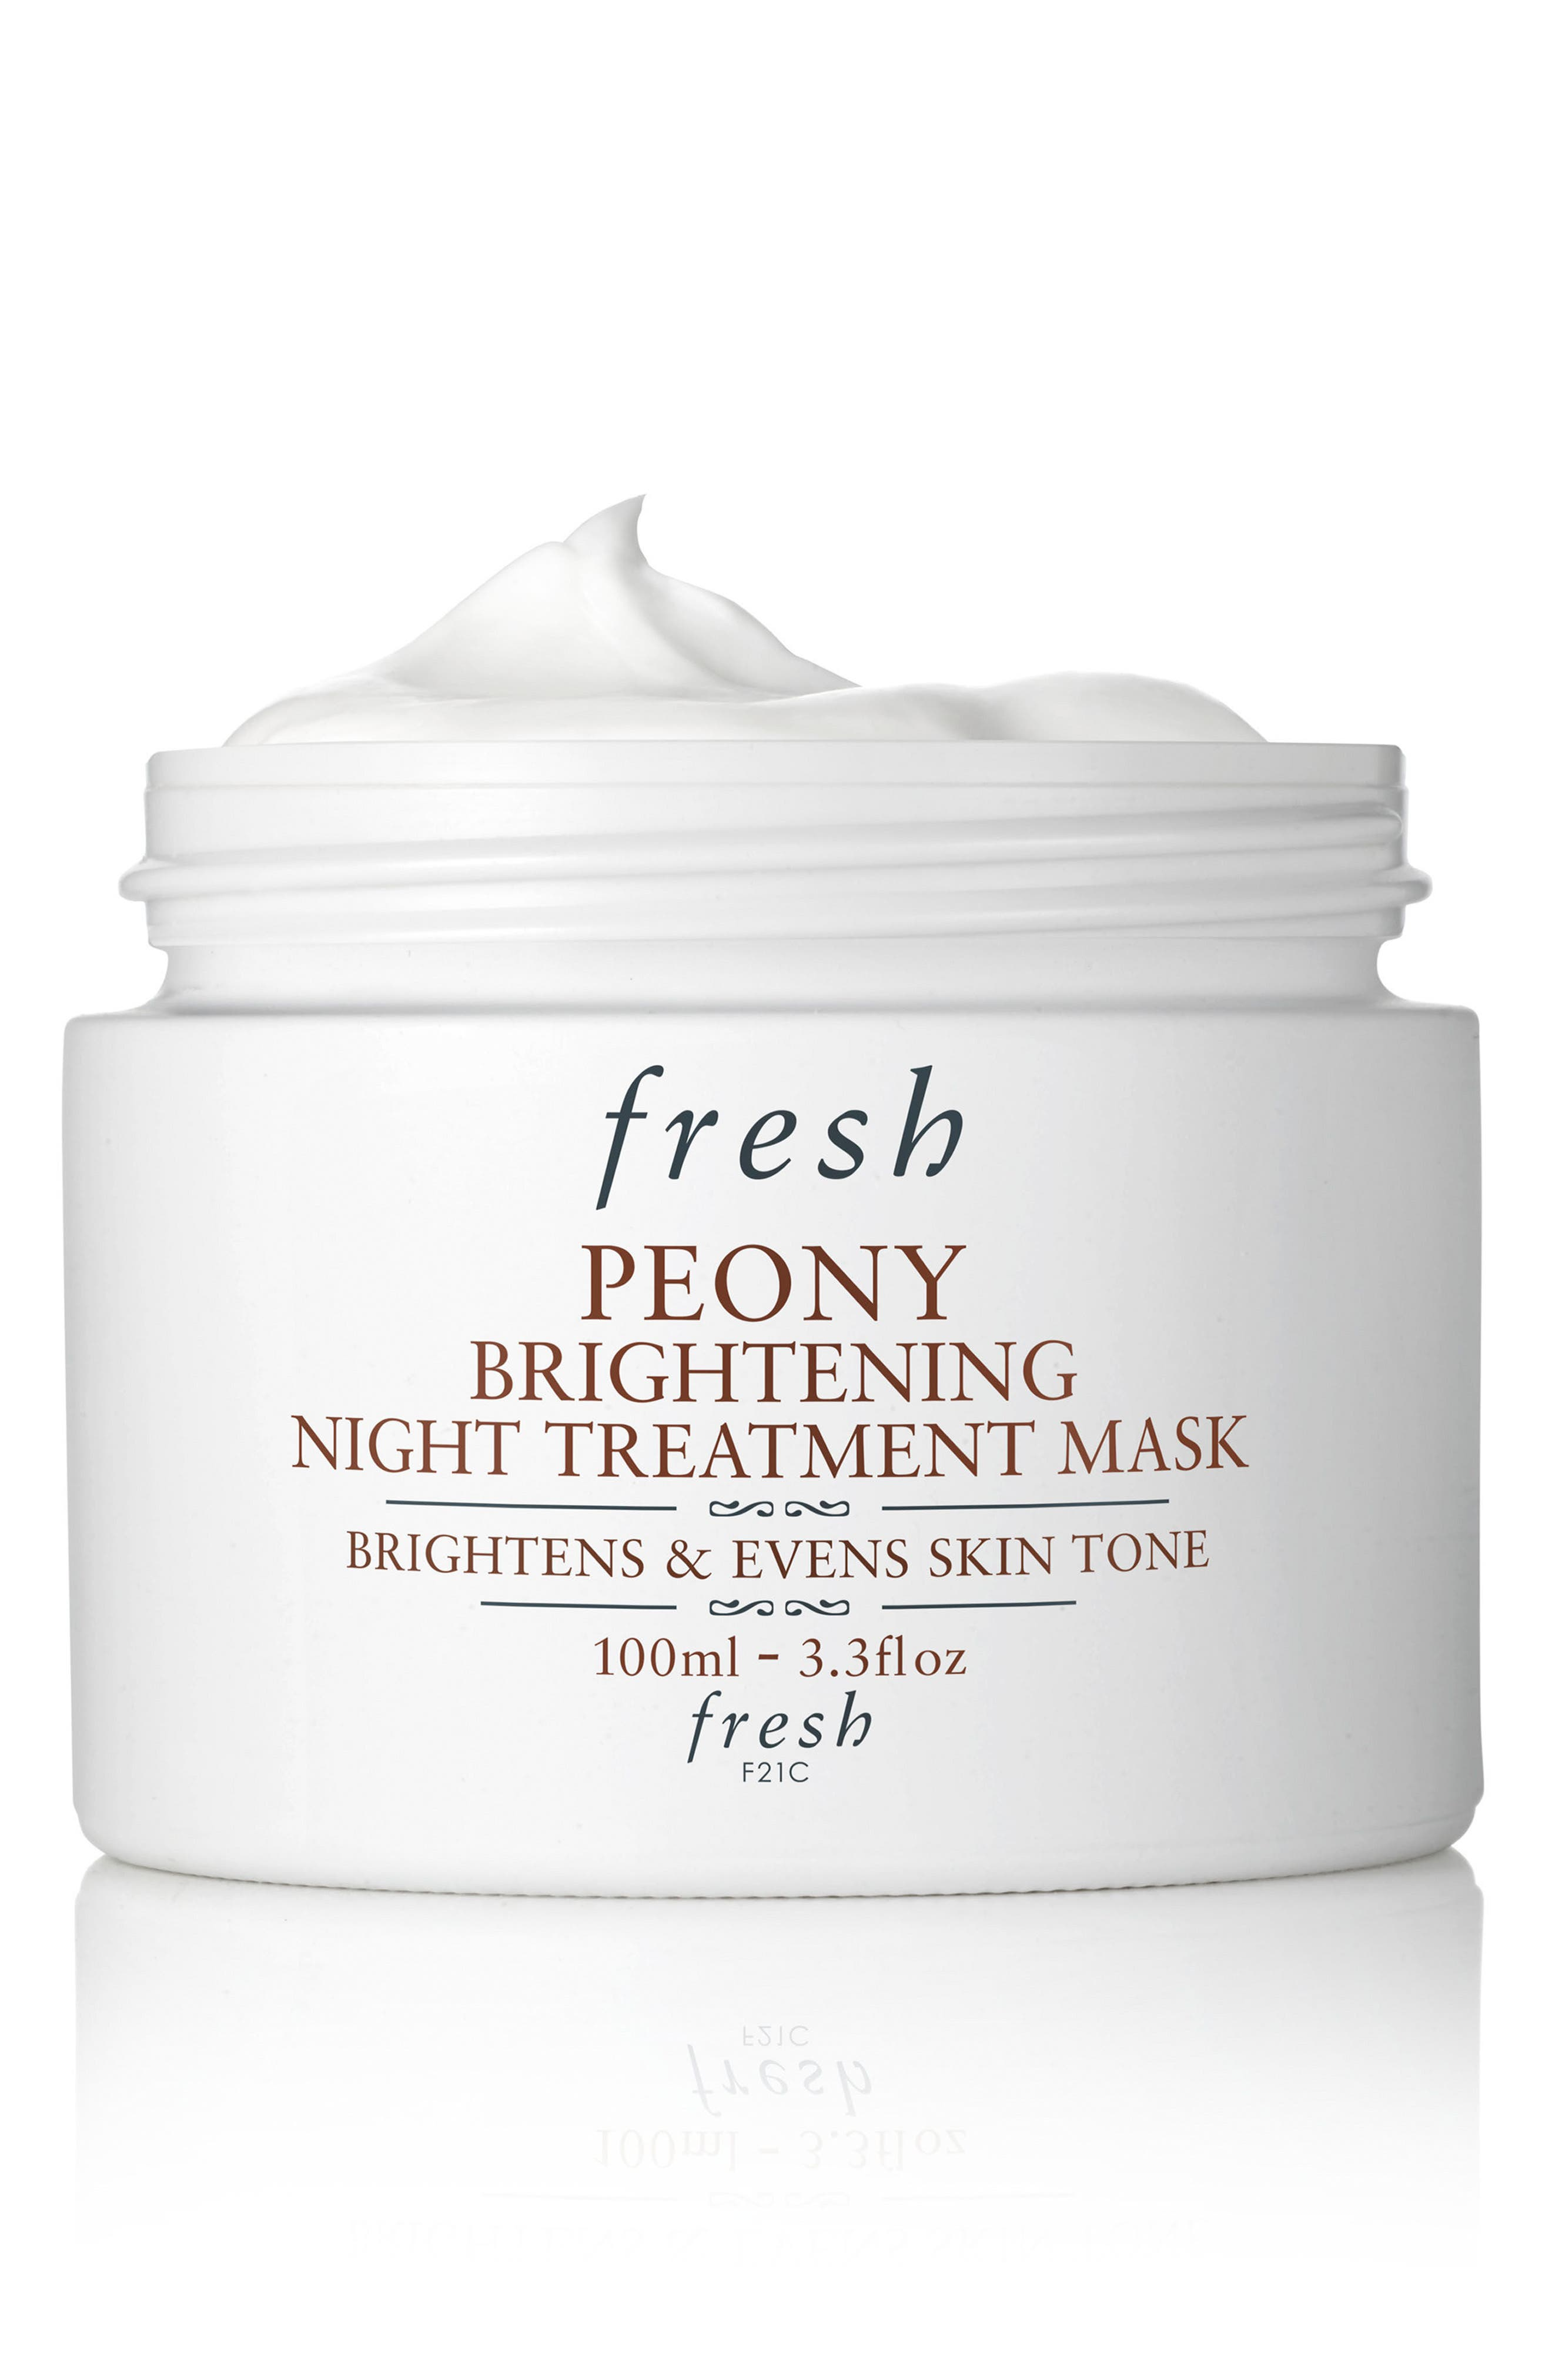 Peony Brightening Night Treatment Mask,                         Main,                         color, NO COLOR